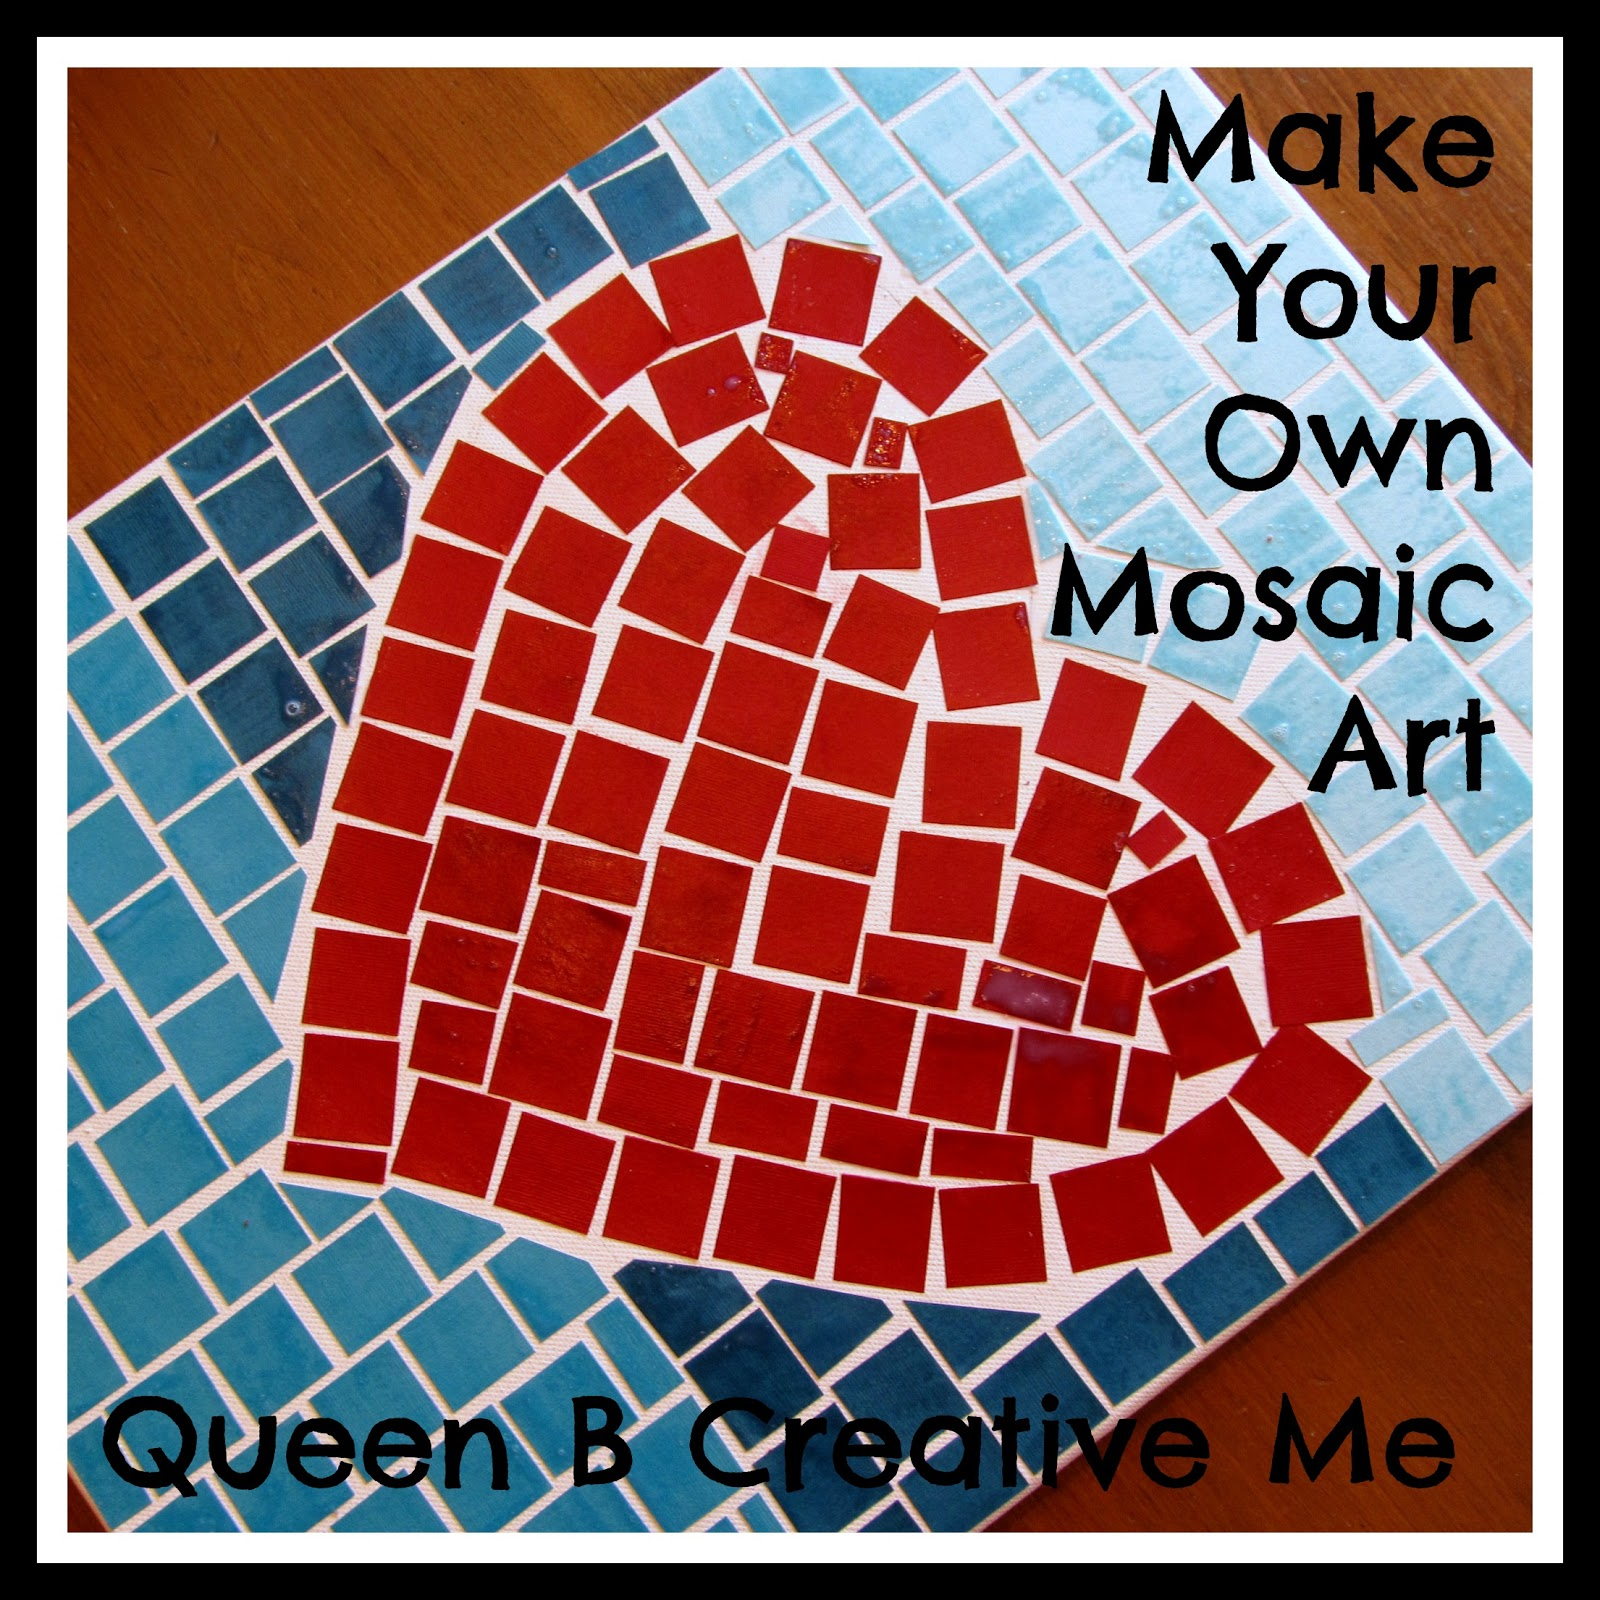 Queen b creative me make your own mosaic art for Mosaic templates for kids